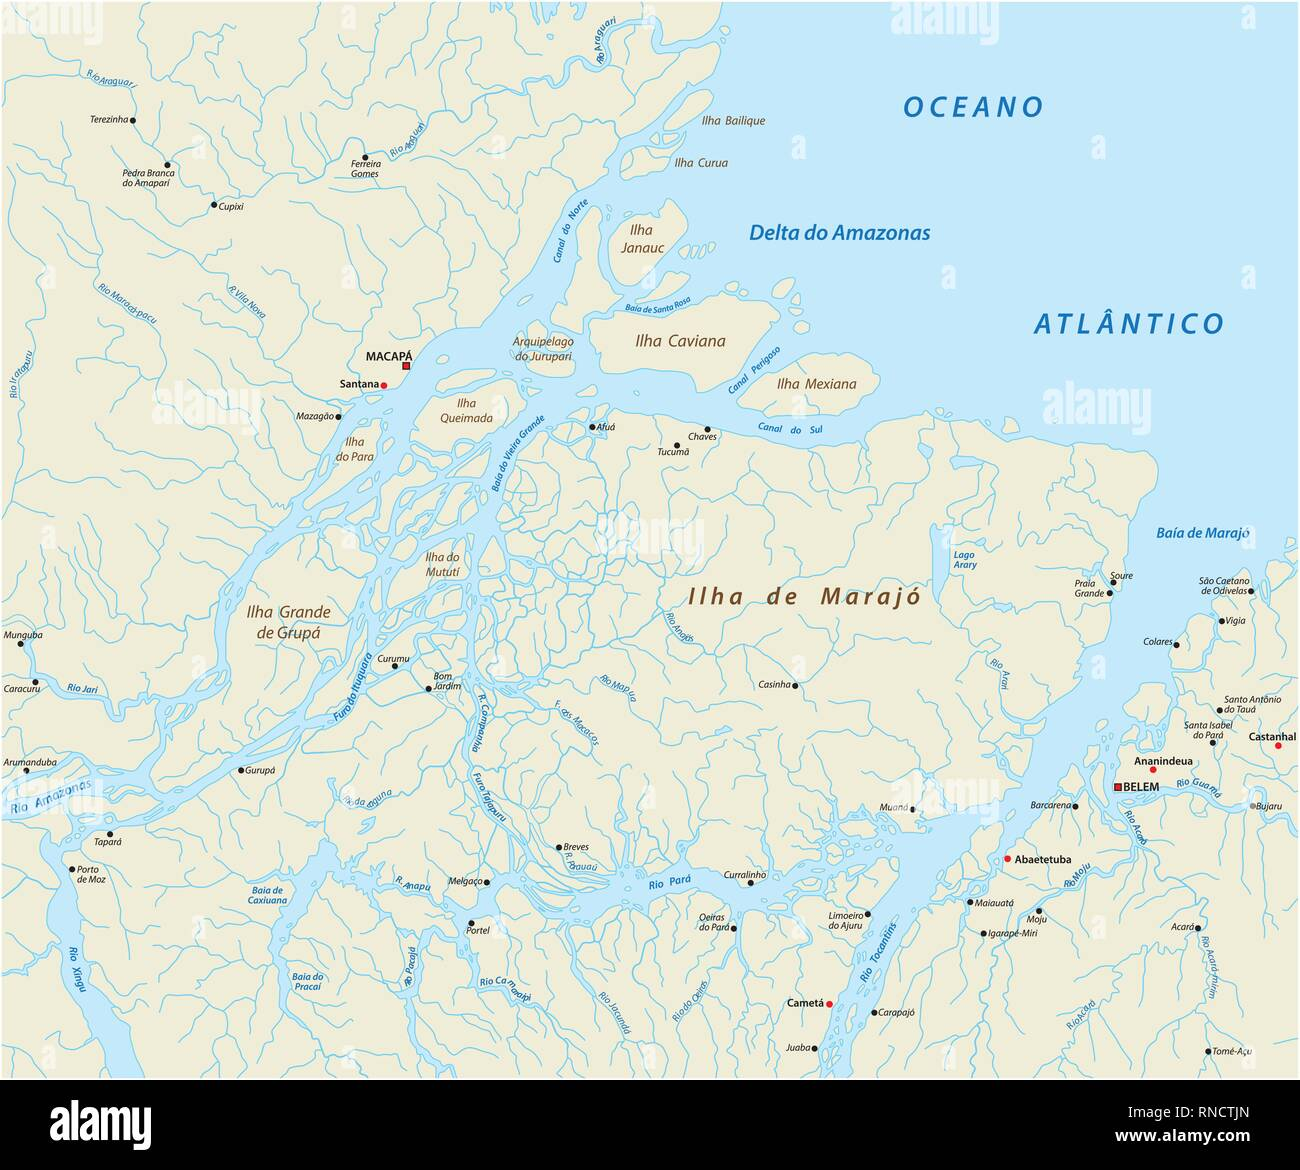 Detailed vector map of the mouth of the Amazon River in the Atlantic Ocean, Brazil - Stock Vector